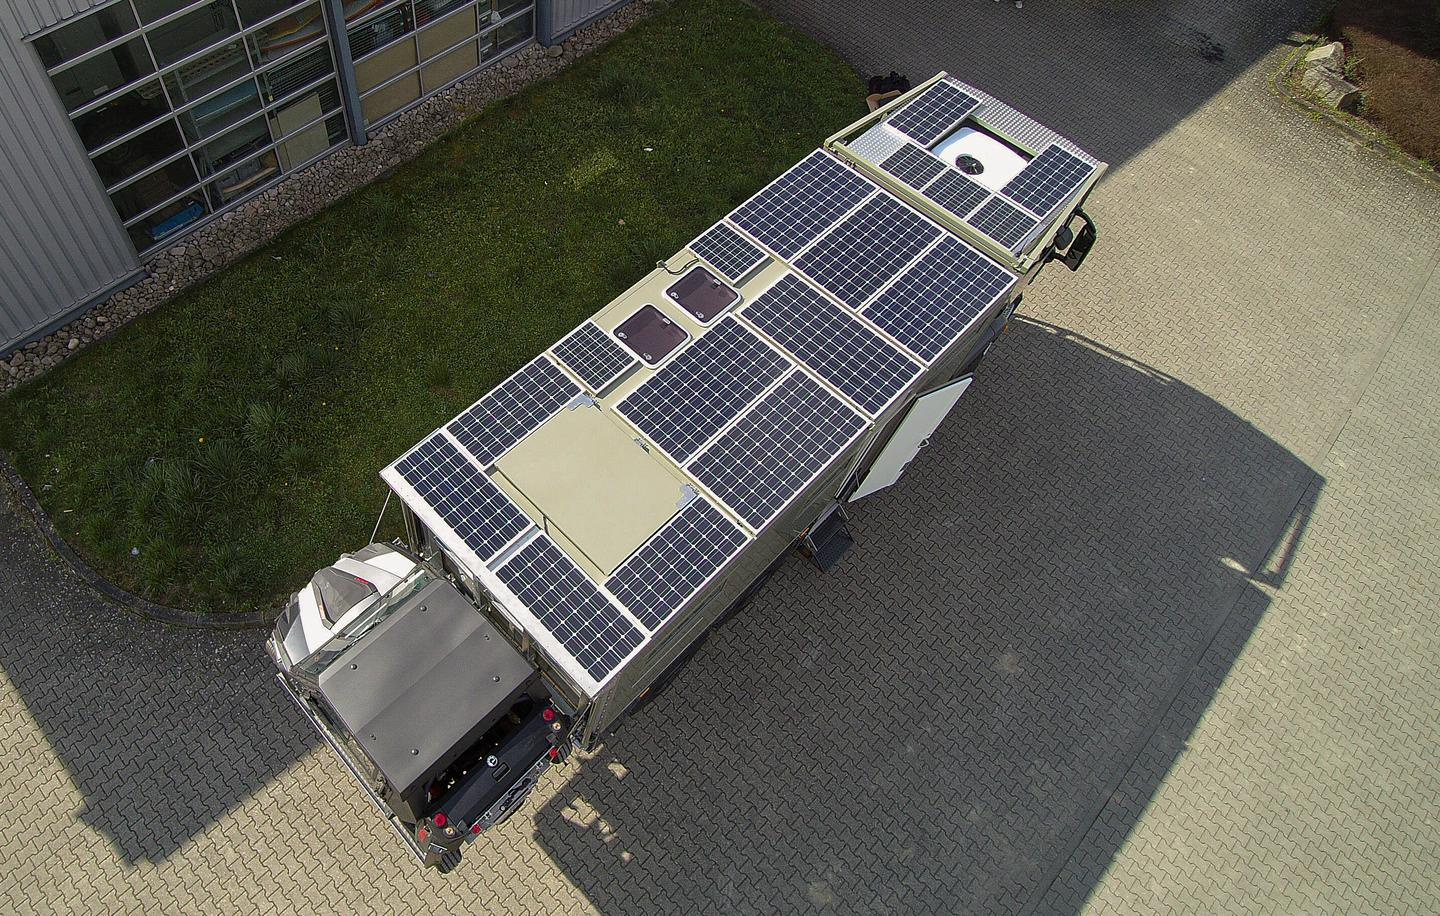 With its roof covered in panels, the Unicat MD56c offers nearly 2,000 watts of solar charging